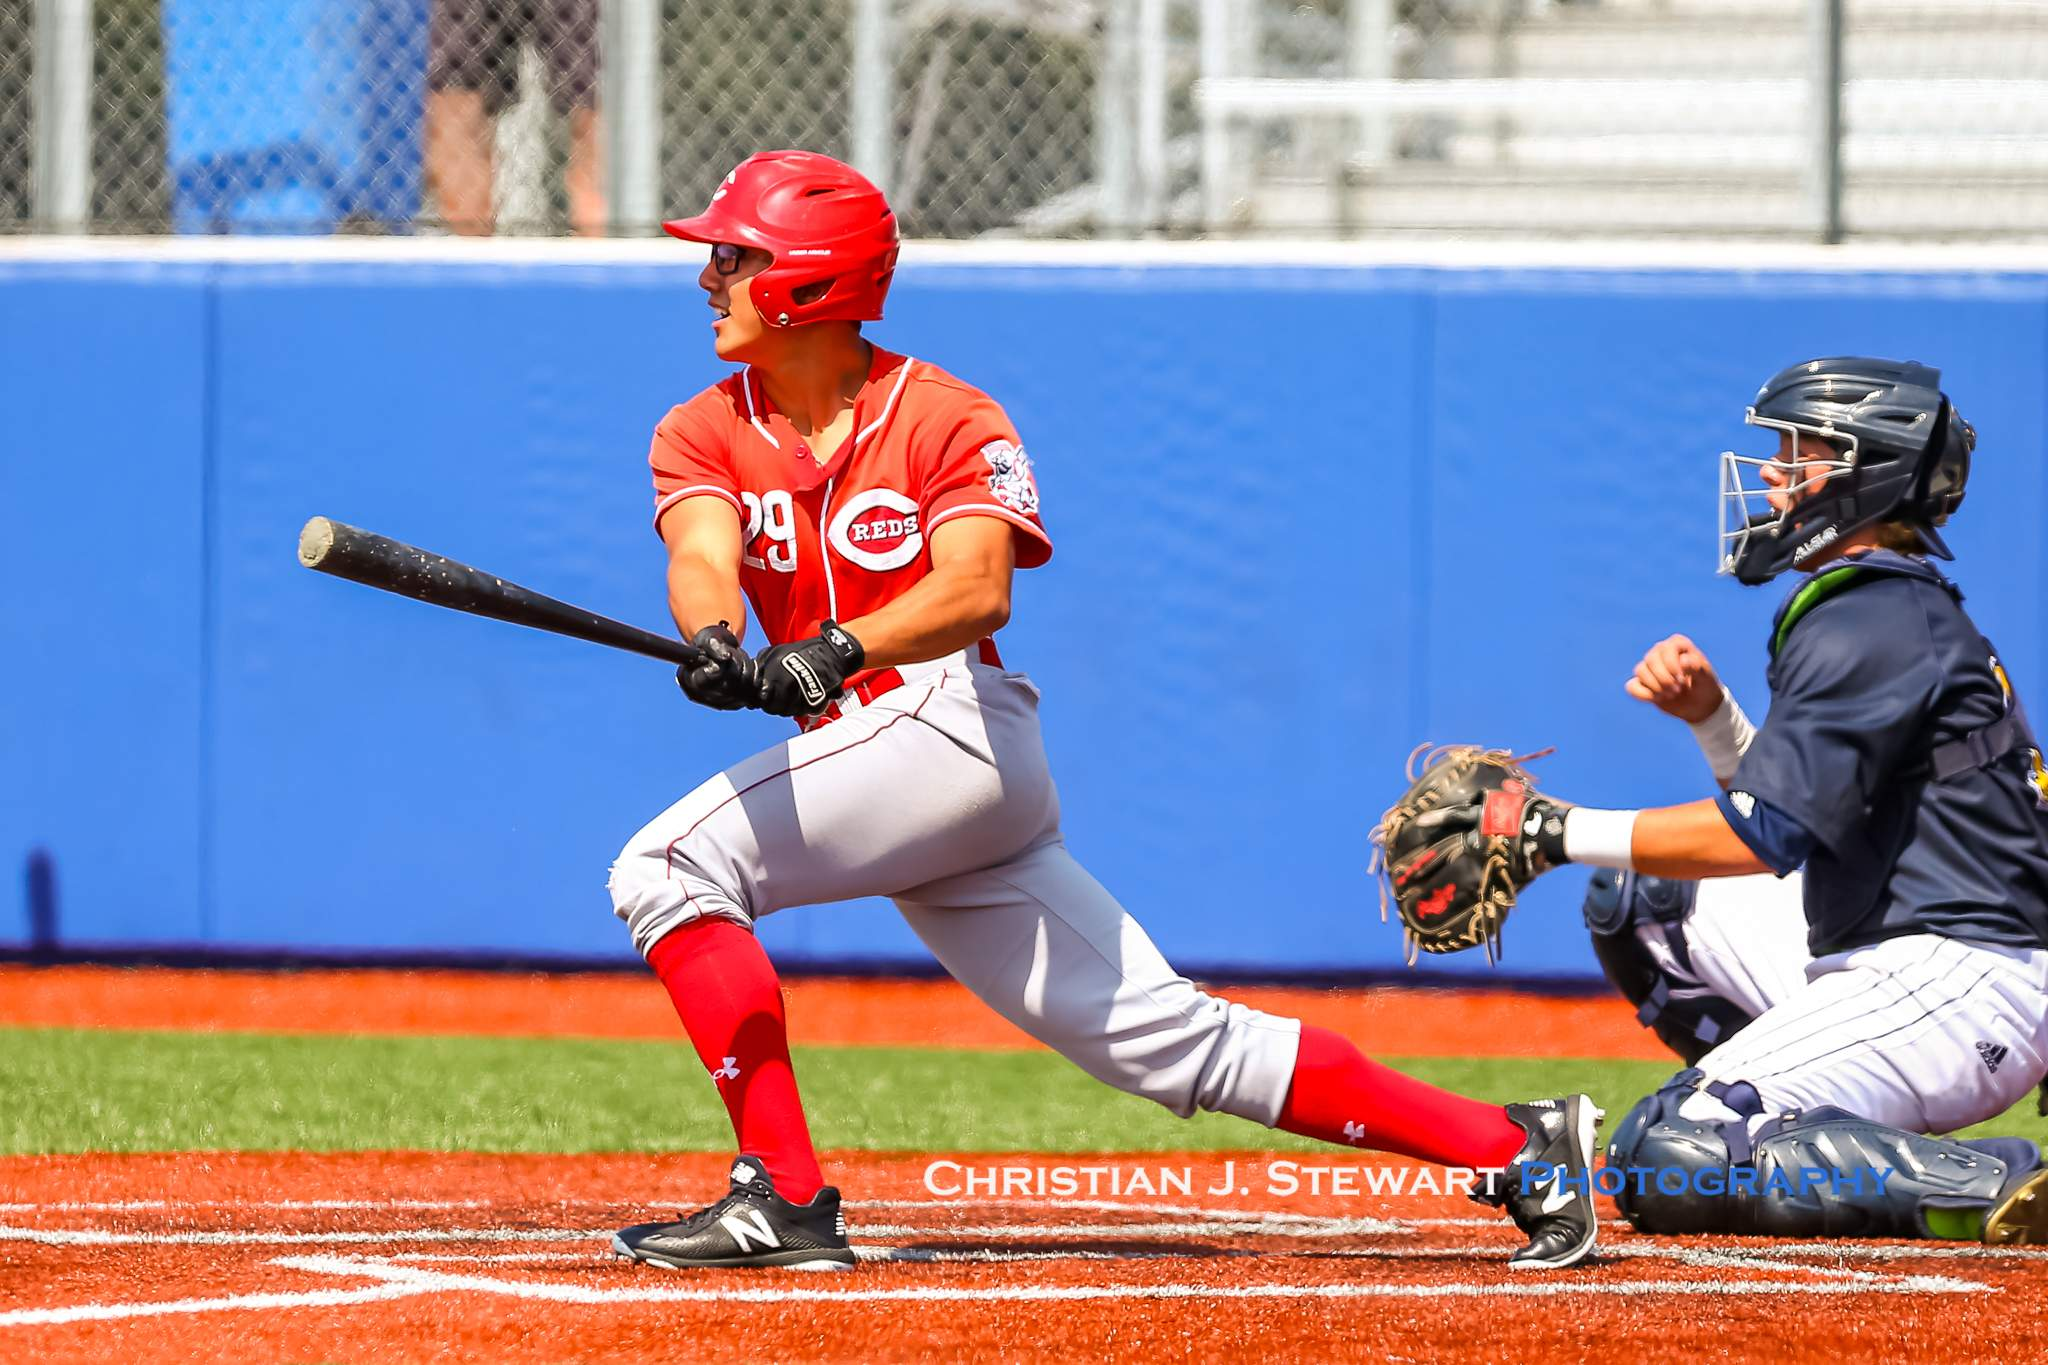 The Red's Williams Camacho Soto strokes one of his three hits against Langley Saturday (Photo: Christian J. Stewart)